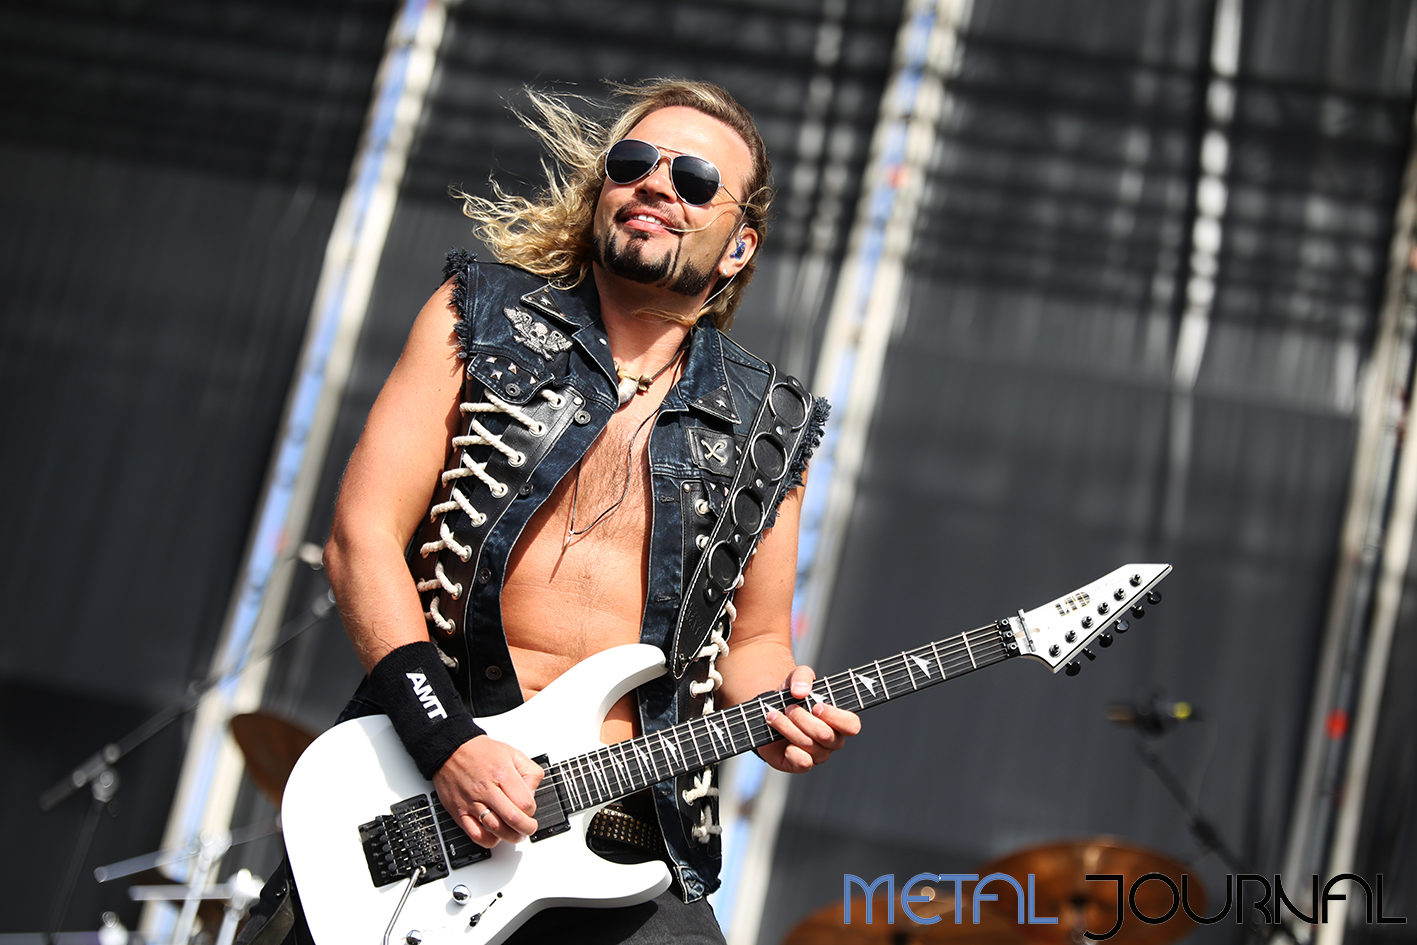 udo metal journal rock the coast 2019 pic 2